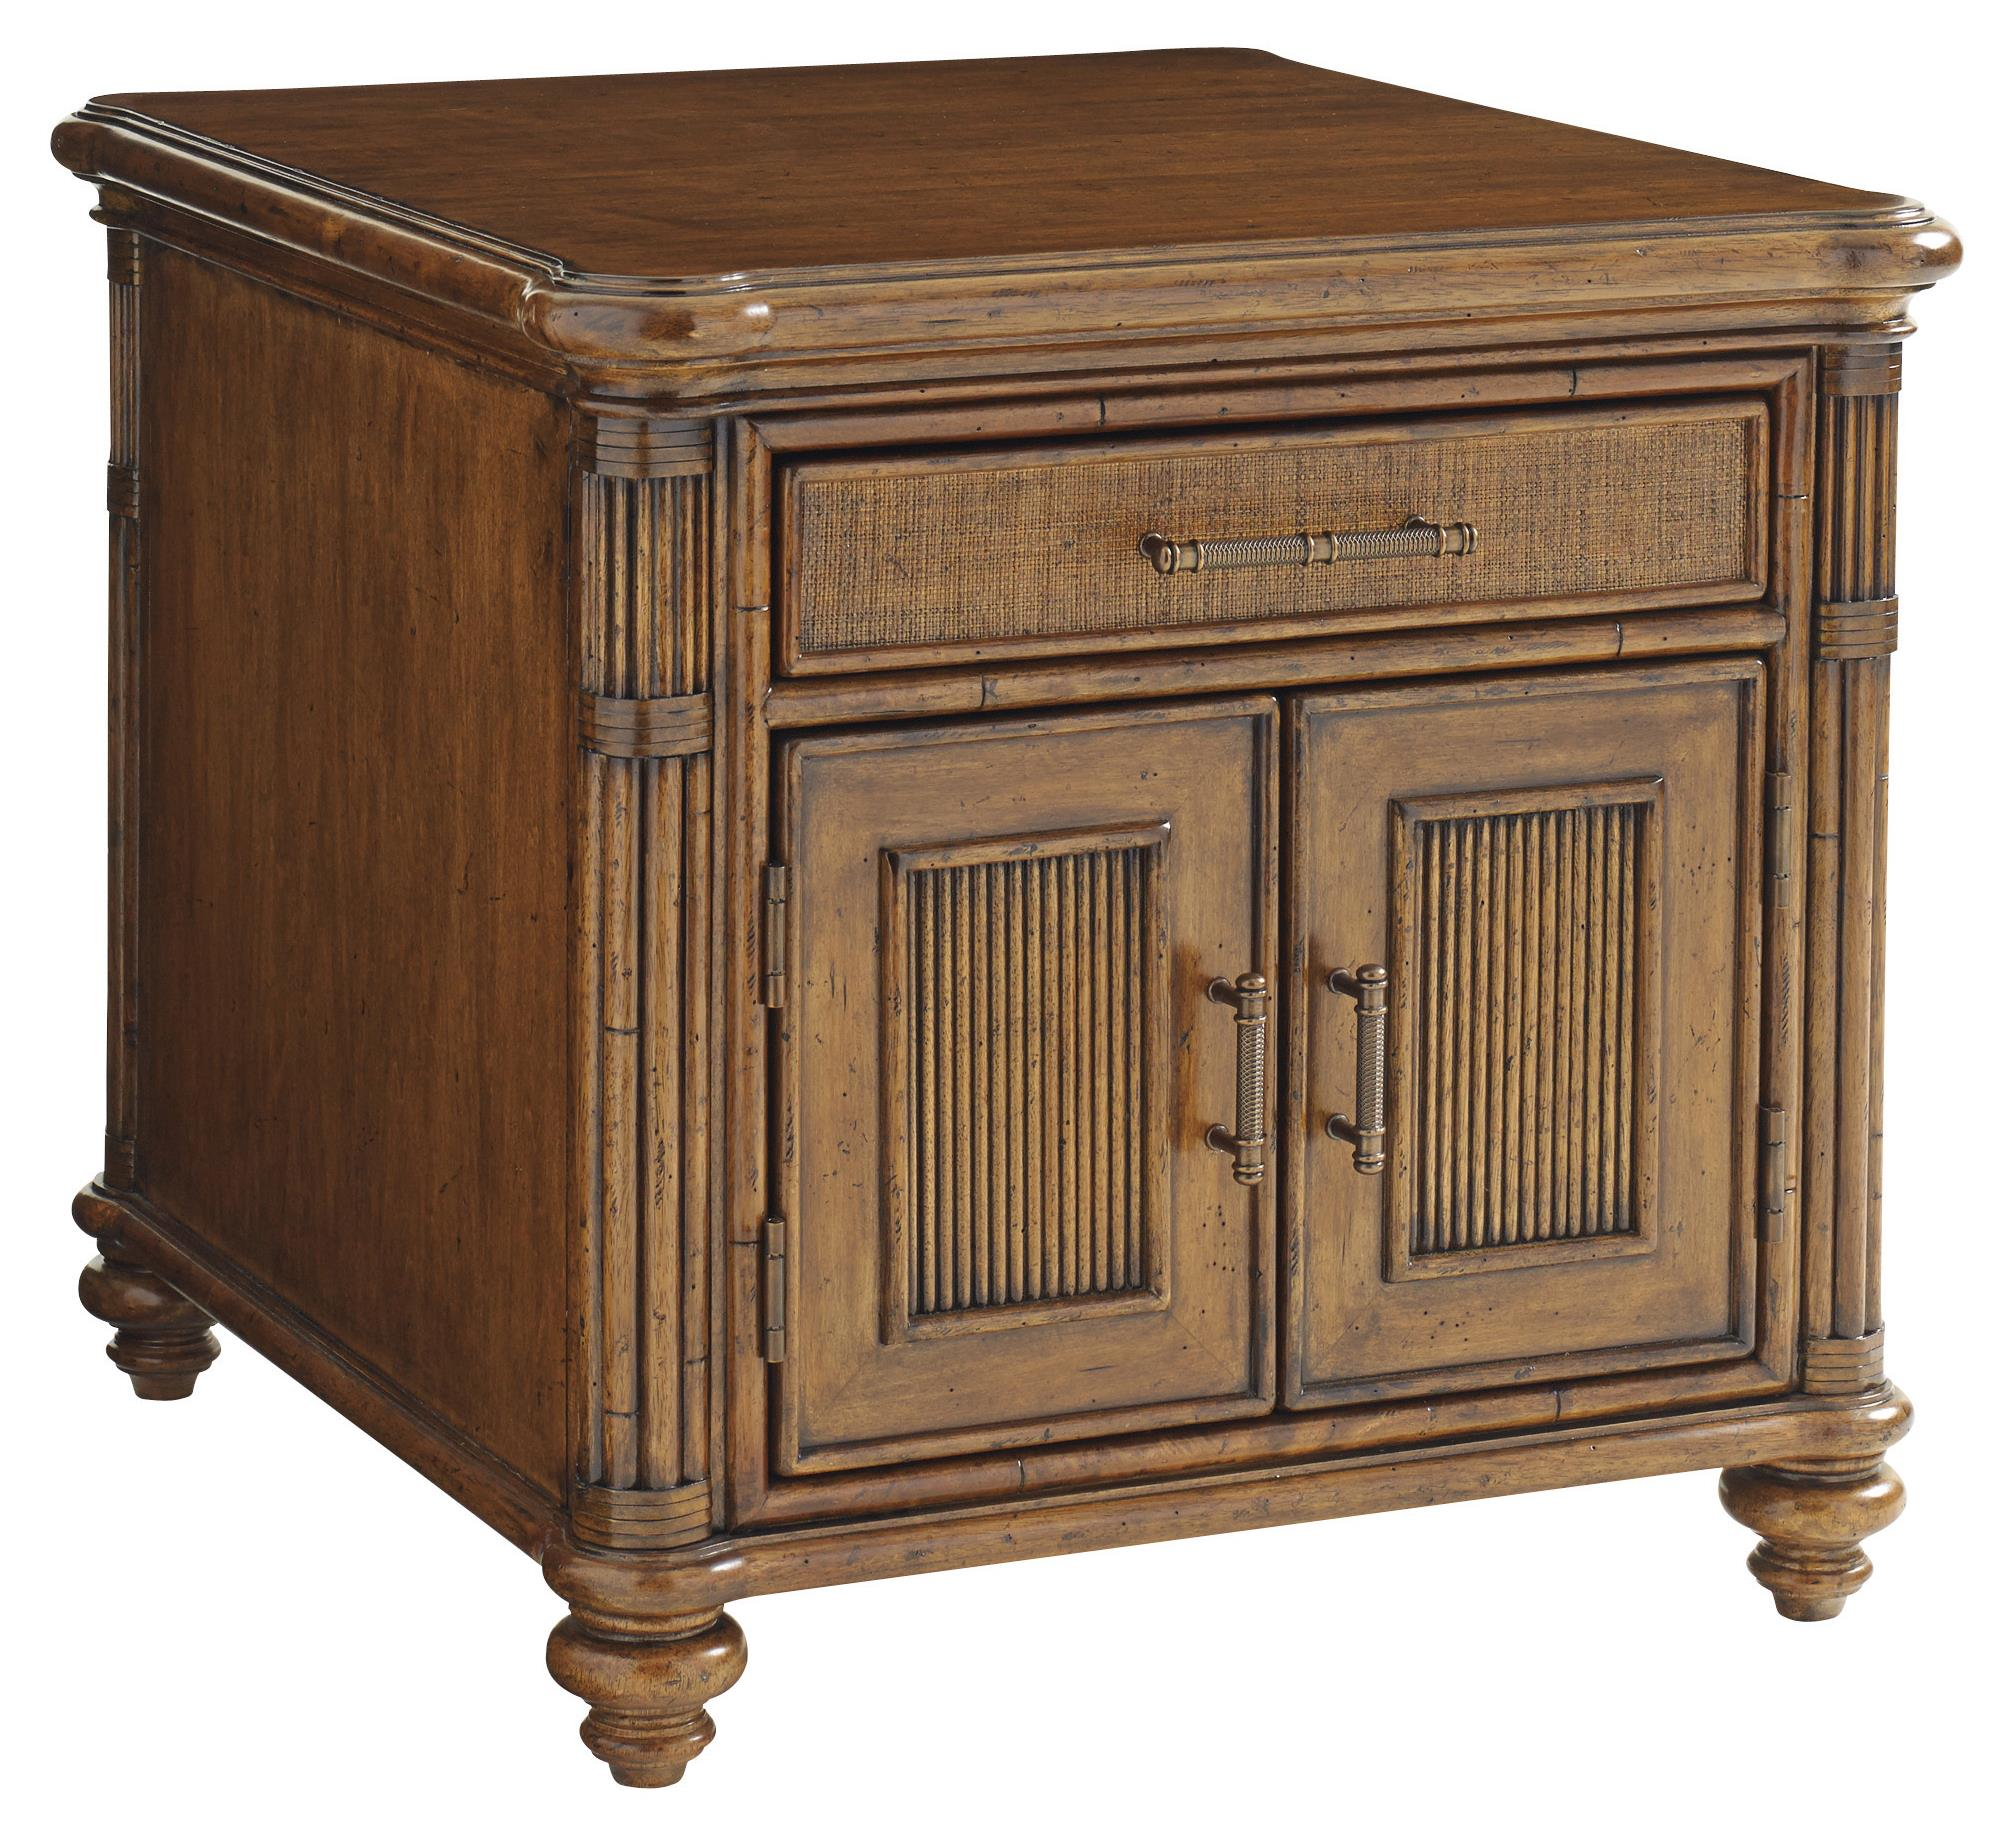 Bali Hai Mariner Storage End Table by Tommy Bahama Home at Baer's Furniture